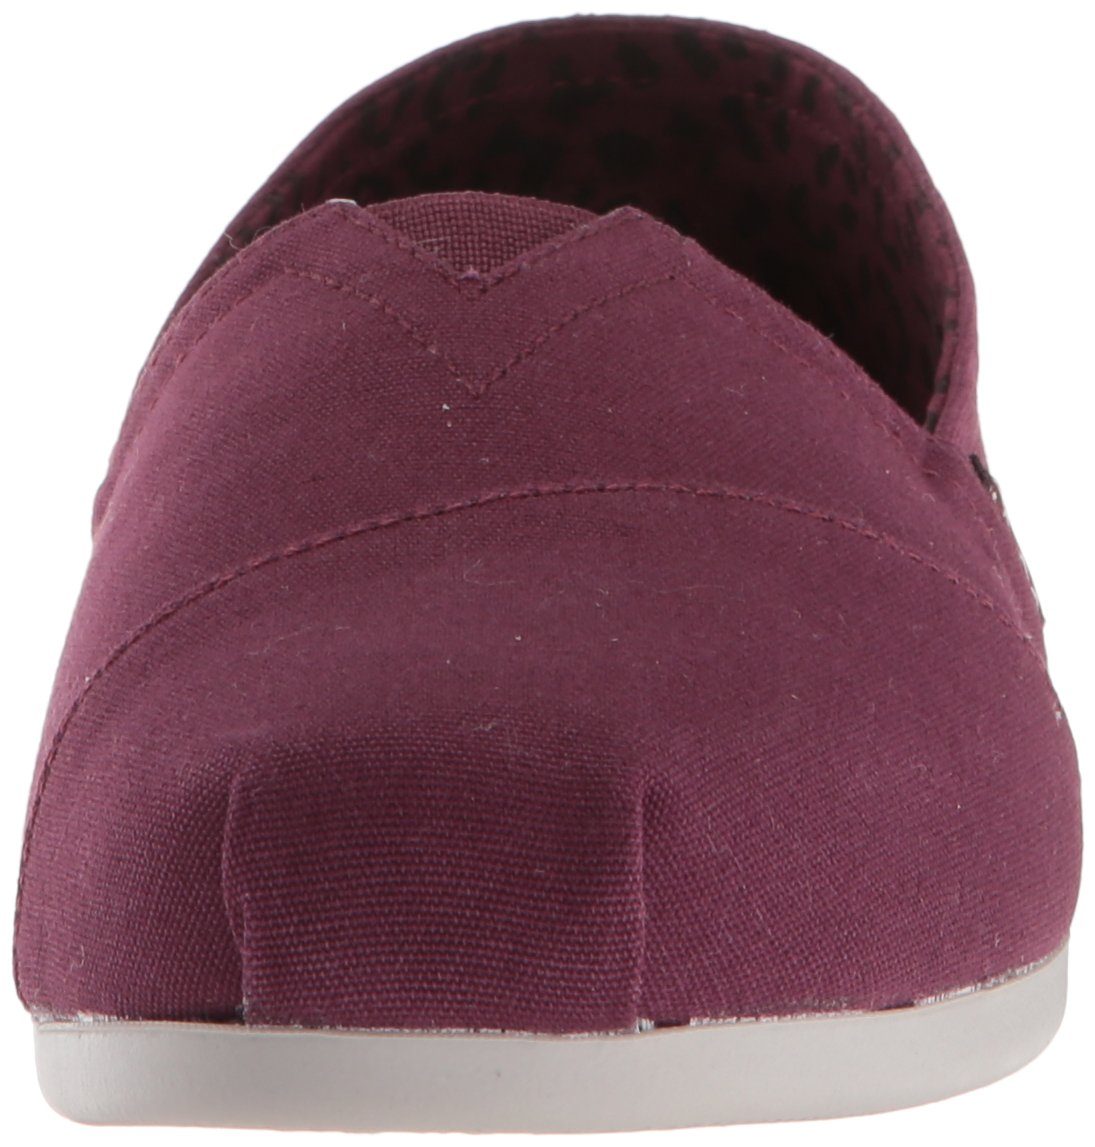 Skechers BOBS Women's Plush-Peace and Love Ballet Flat, Burgundy, 8 M US by Skechers (Image #4)